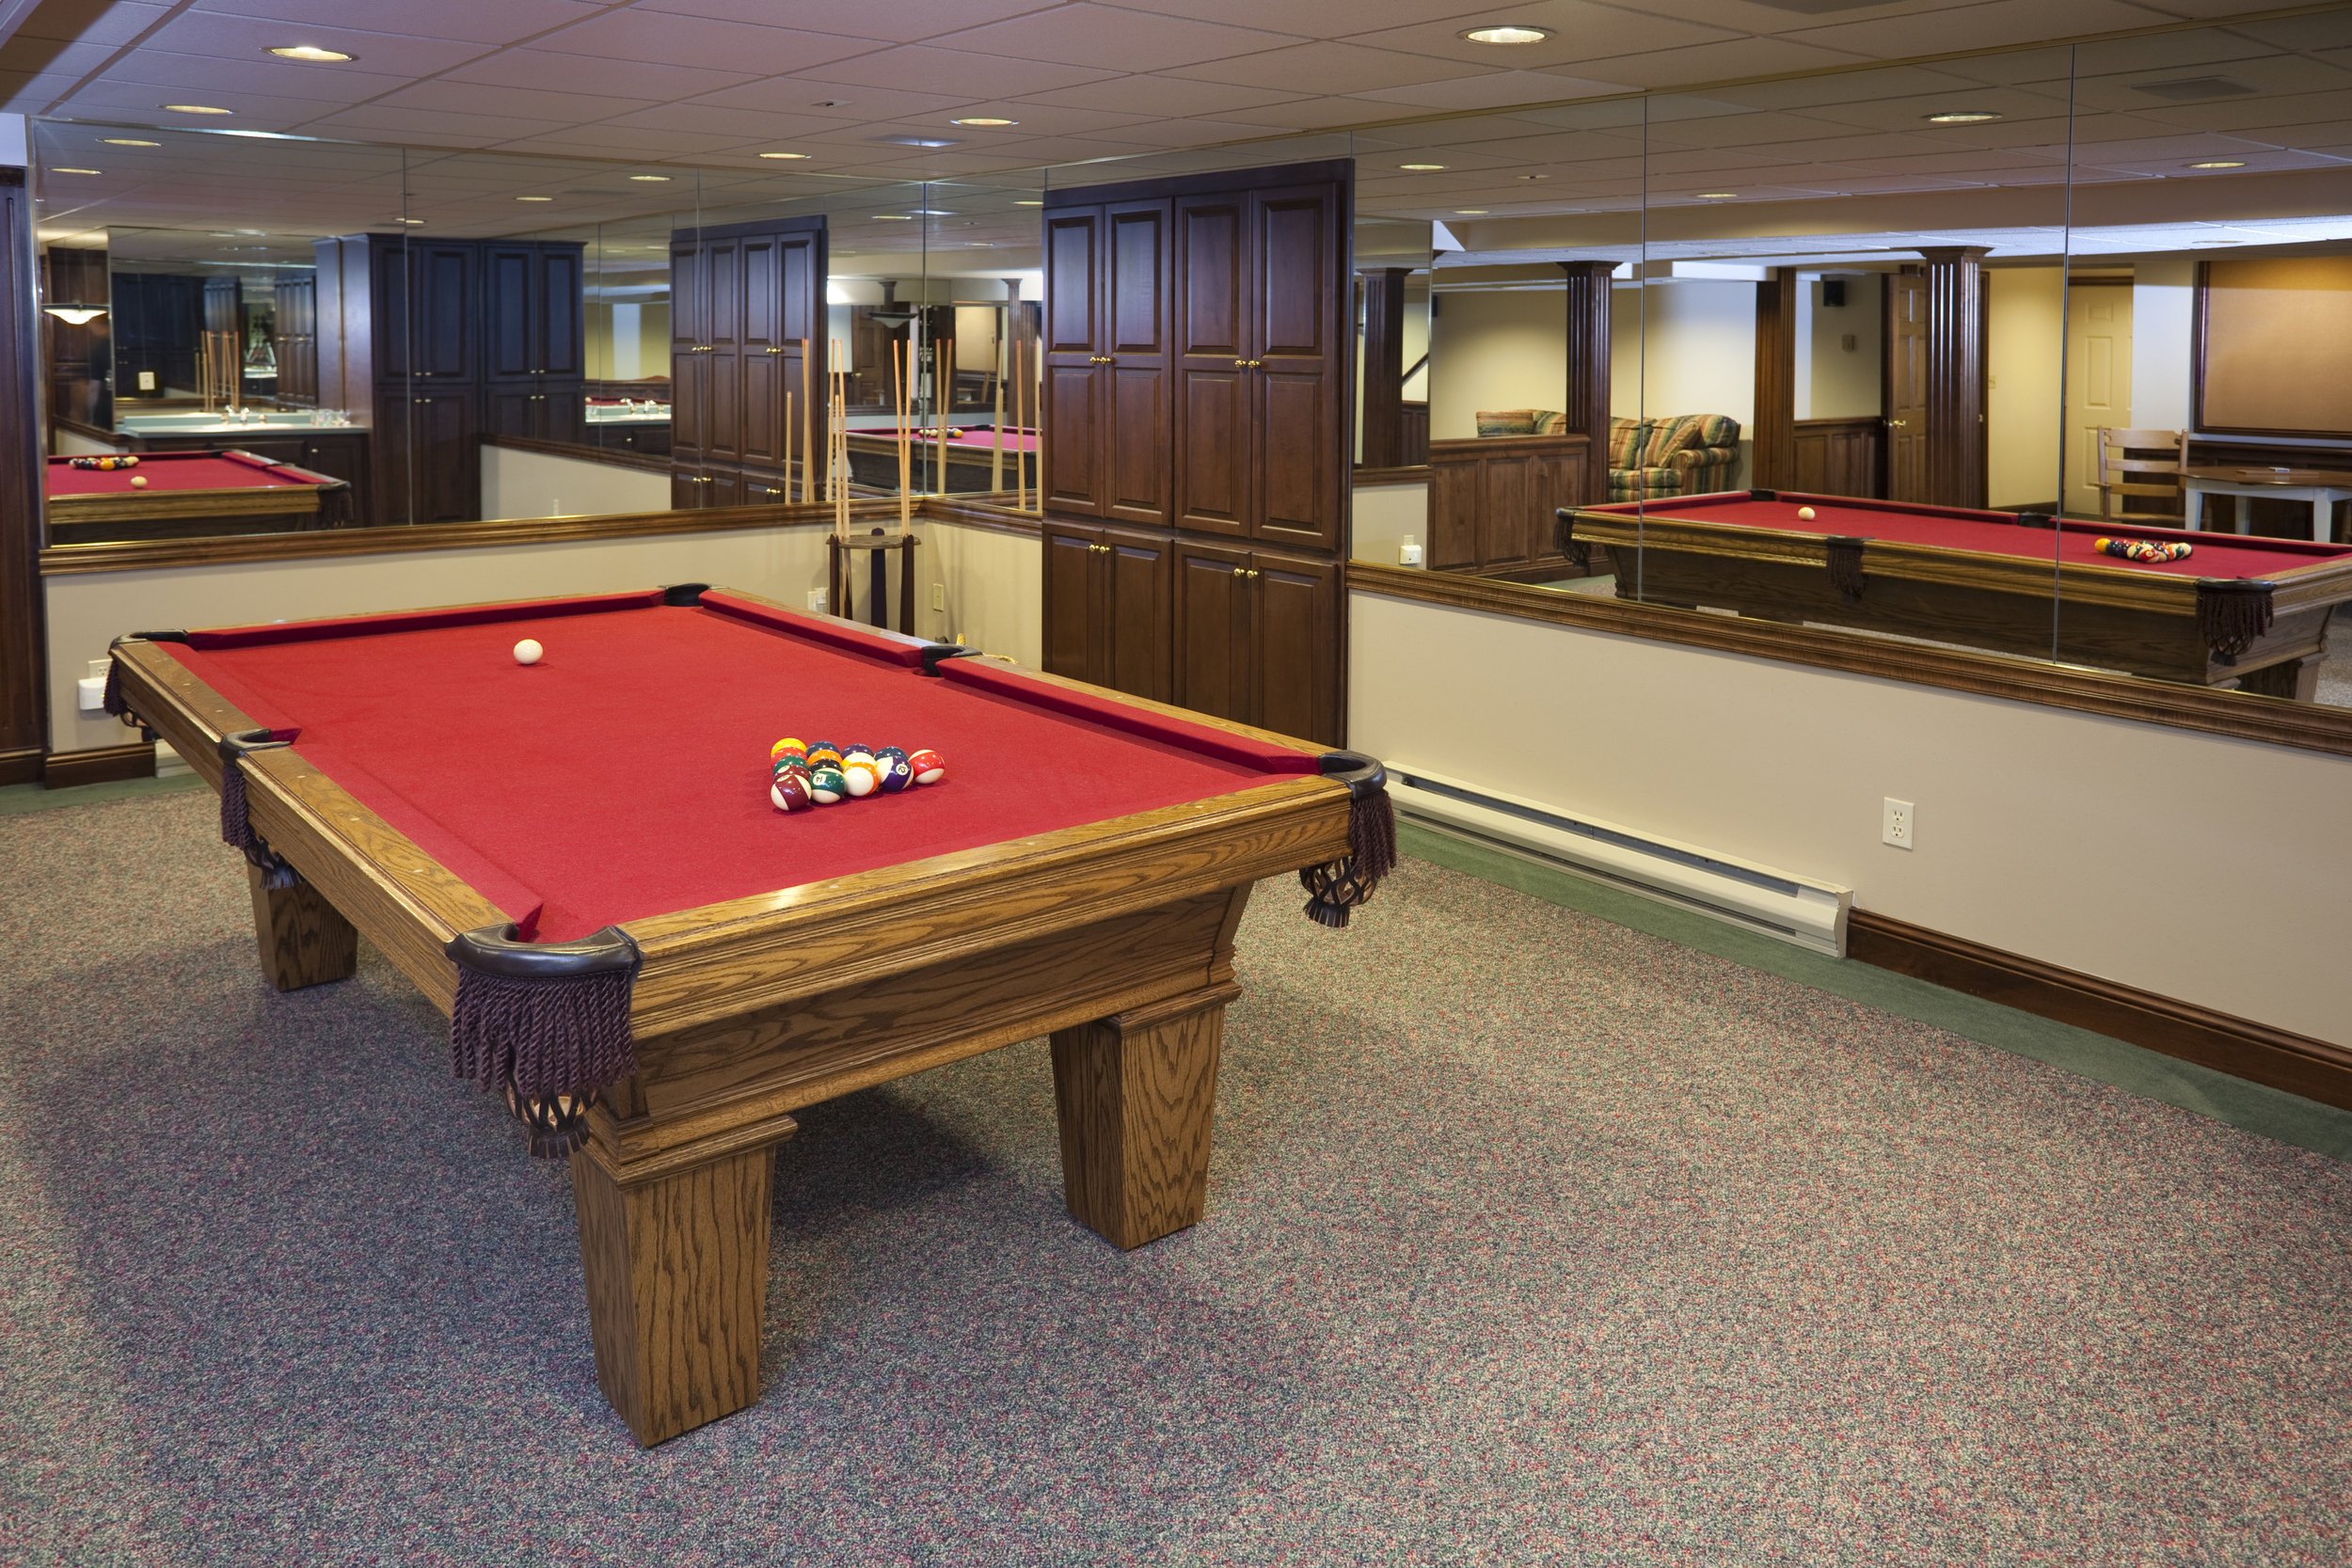 Building relationships one custom home at a time. General Contracting in the Fenton, South Lyon, Novi, Canton, Clarkston, Orion, and other Southwest Michigan areas Custom Basements